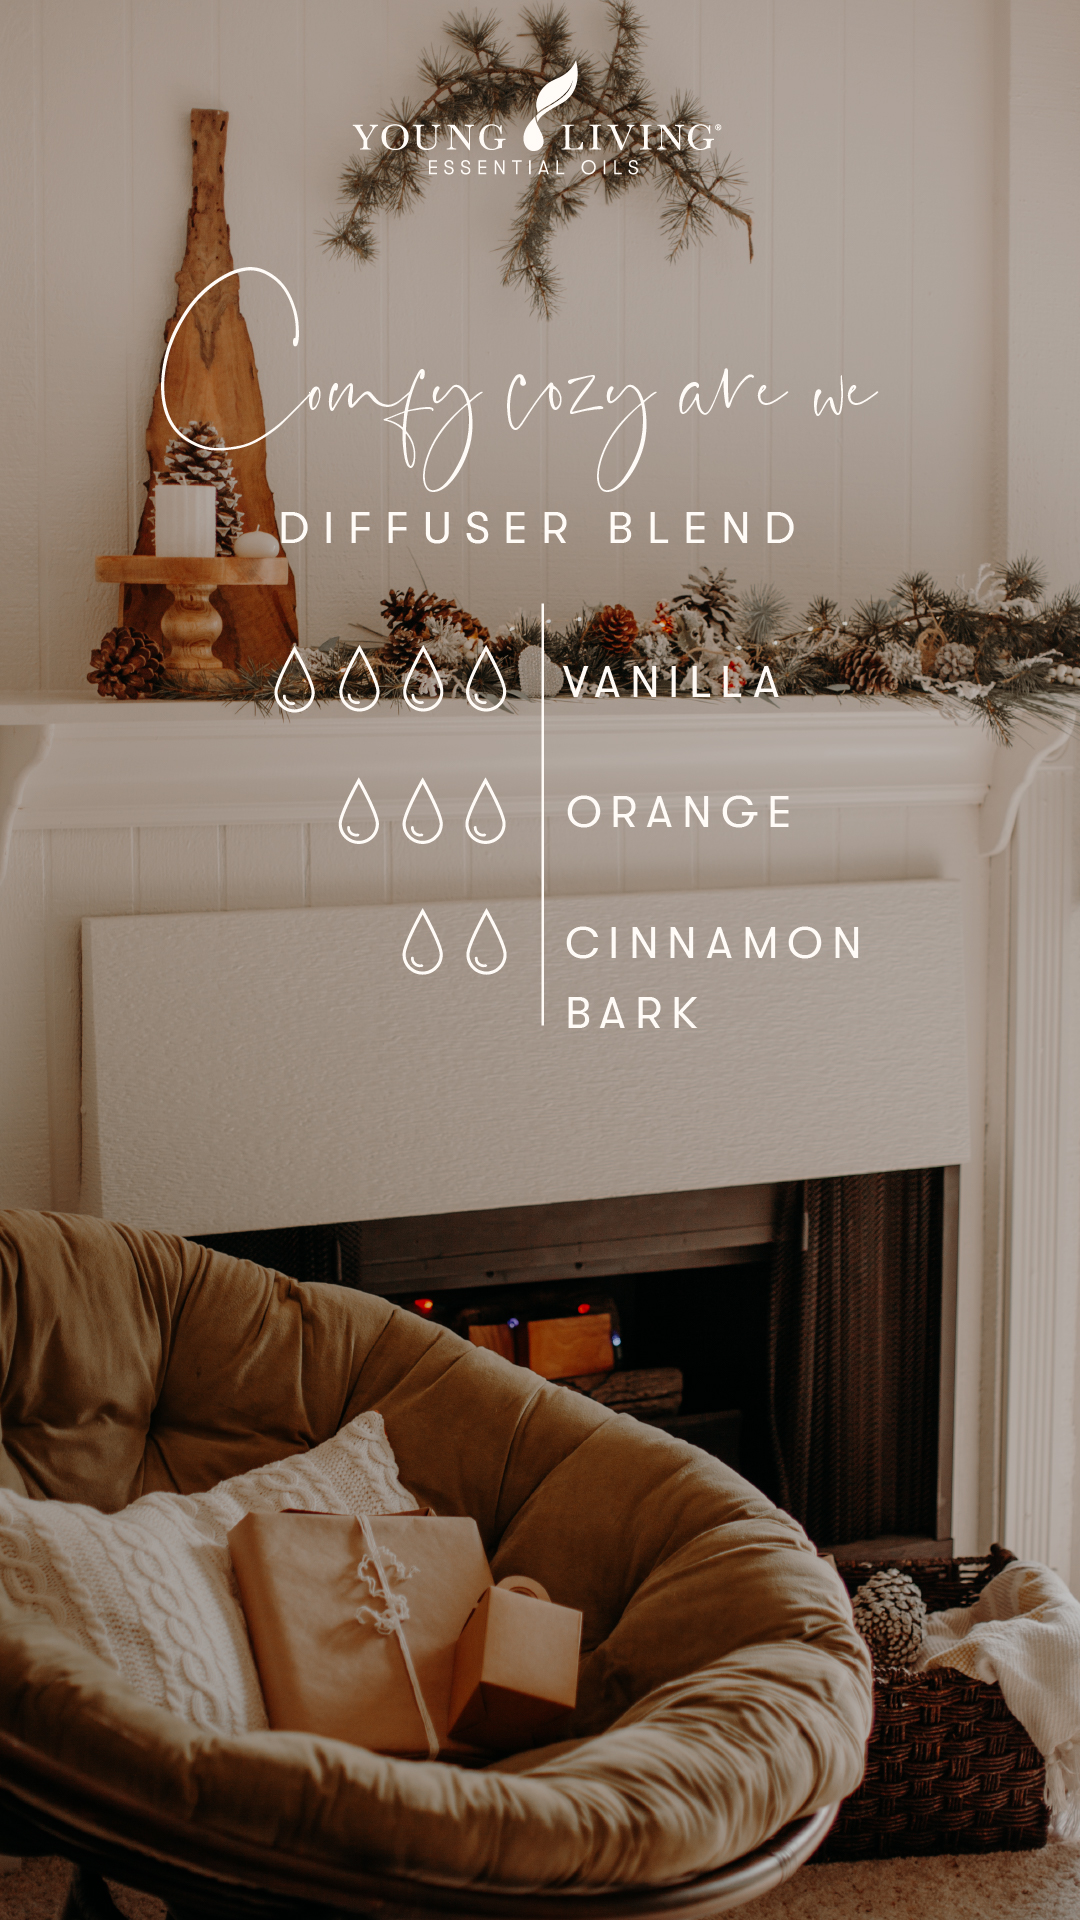 Young Living Holiday Diffuser Blend - comfy cozy are we